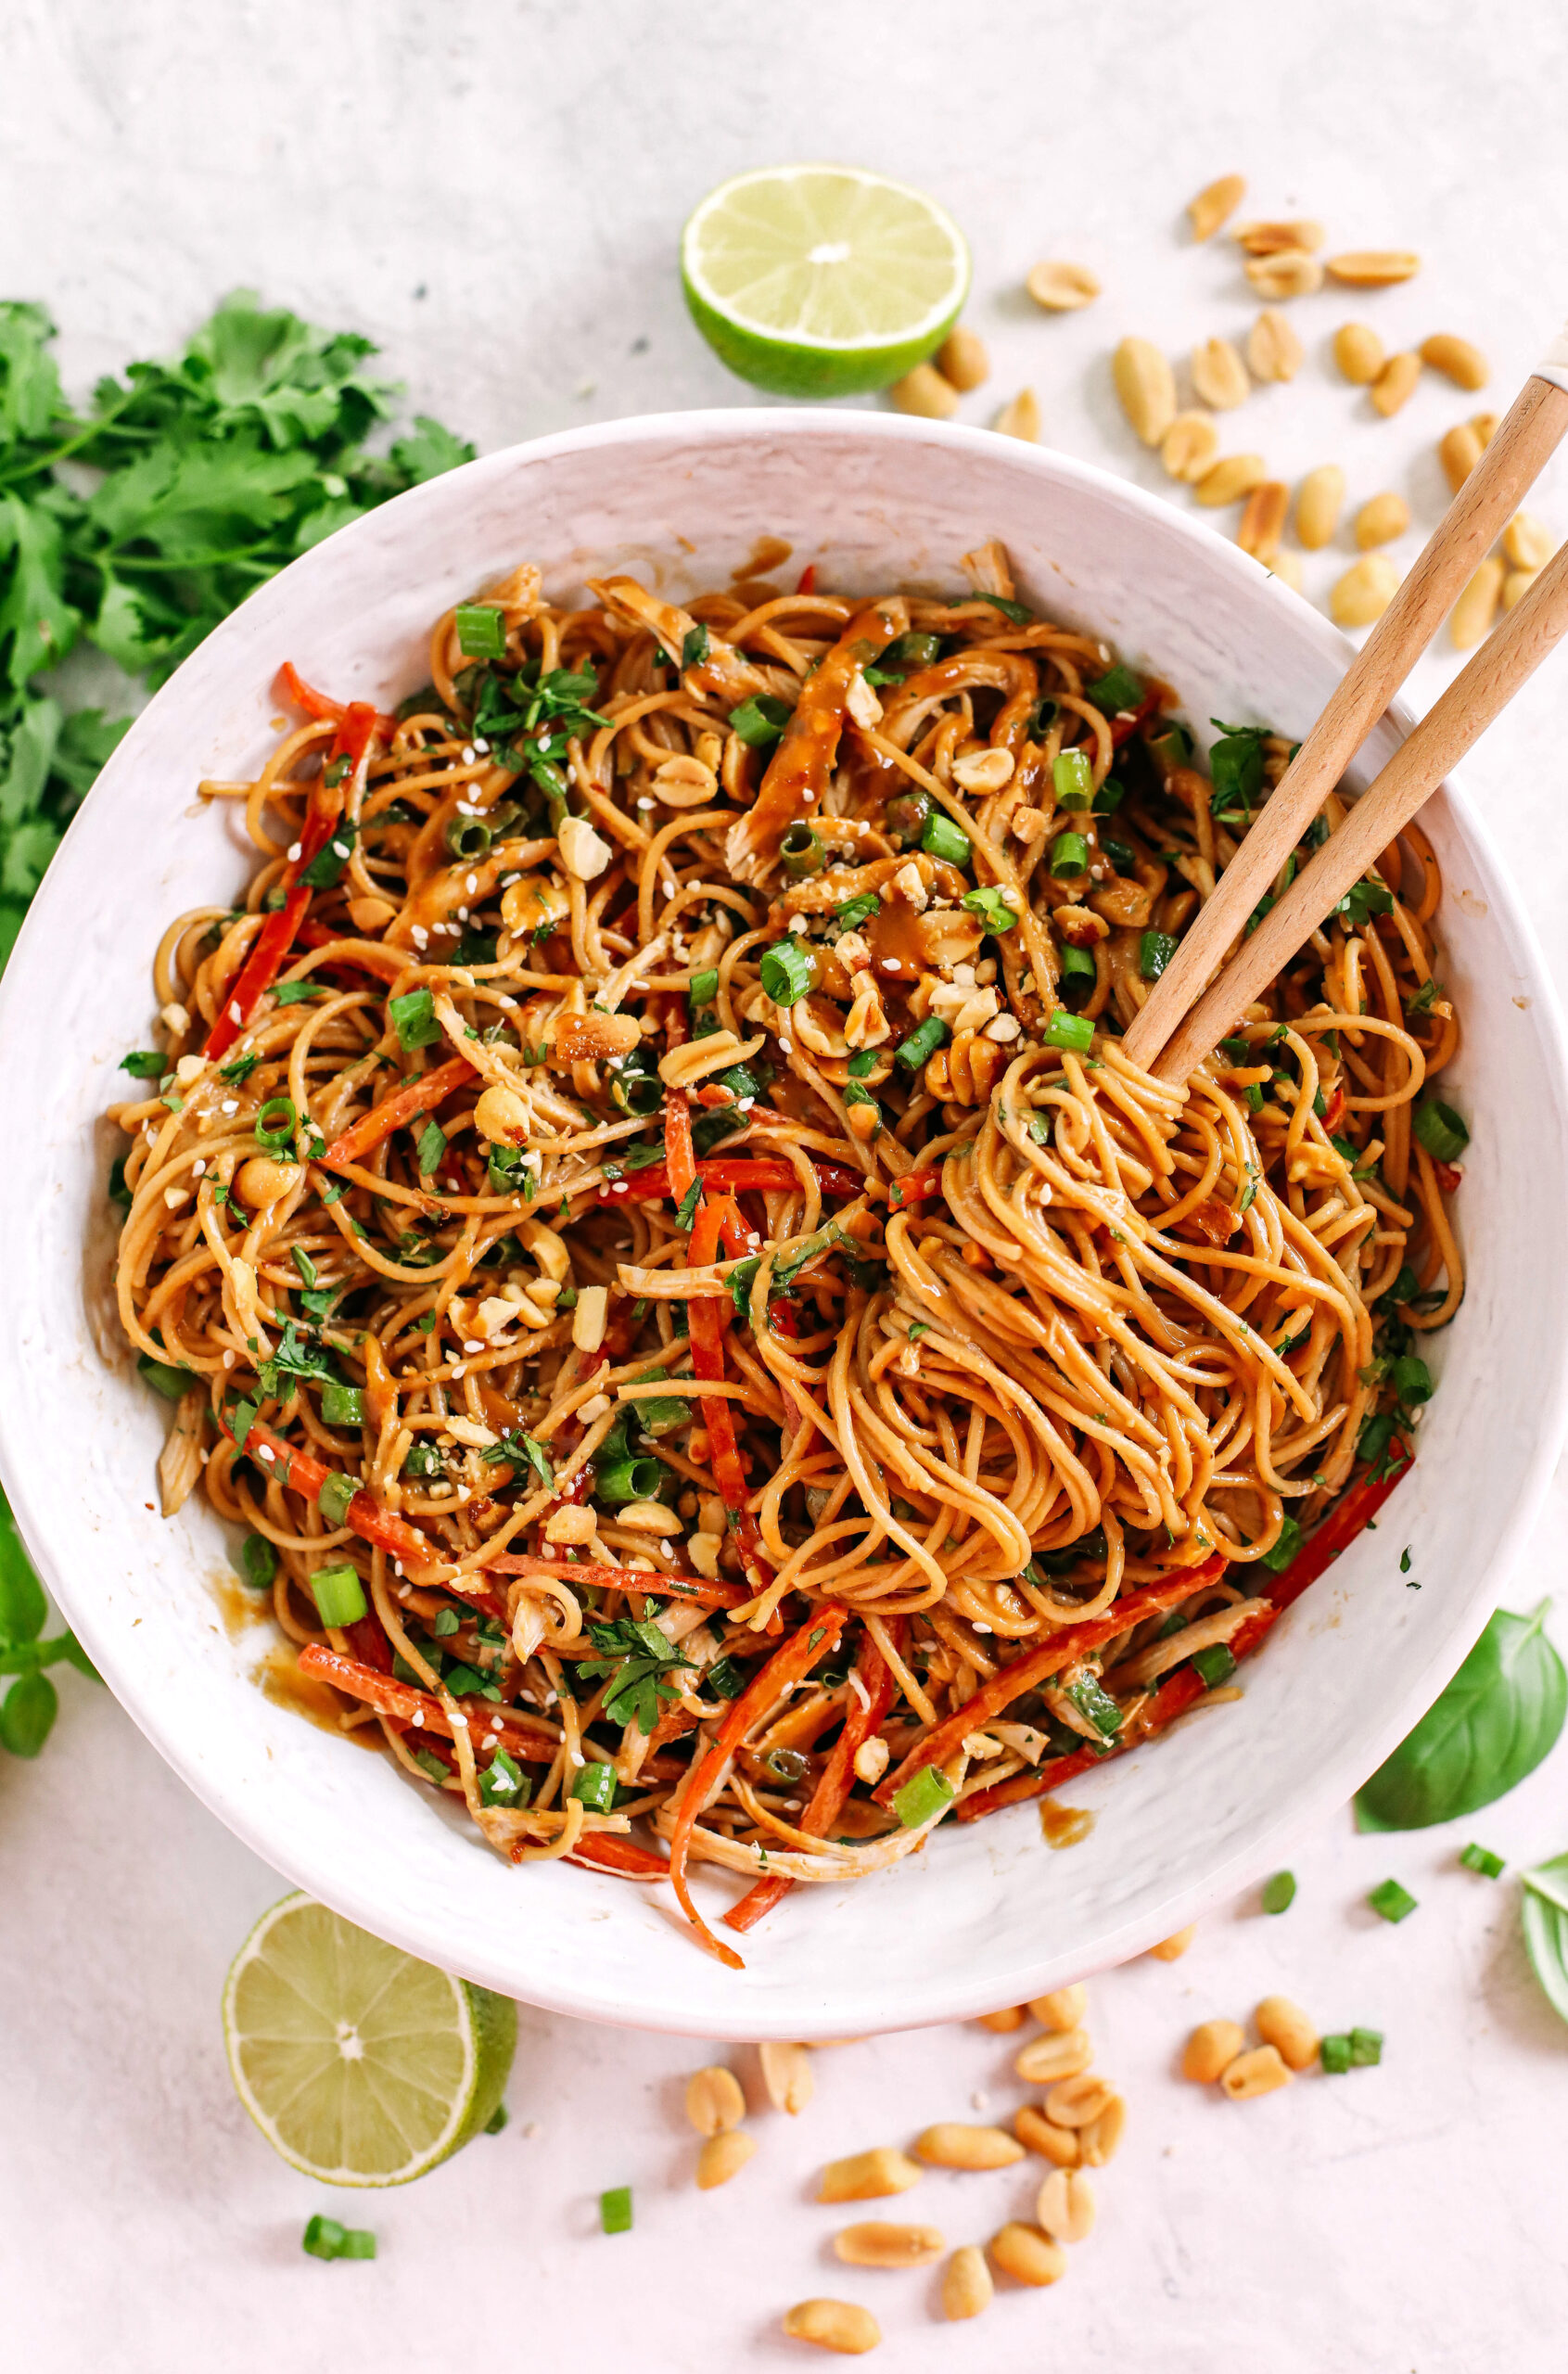 These Asian Peanut Noodles are loaded with shredded chicken, bell pepper, green onions, crunchy peanuts and fresh herbs all tossed together in a delicious peanut sauce!